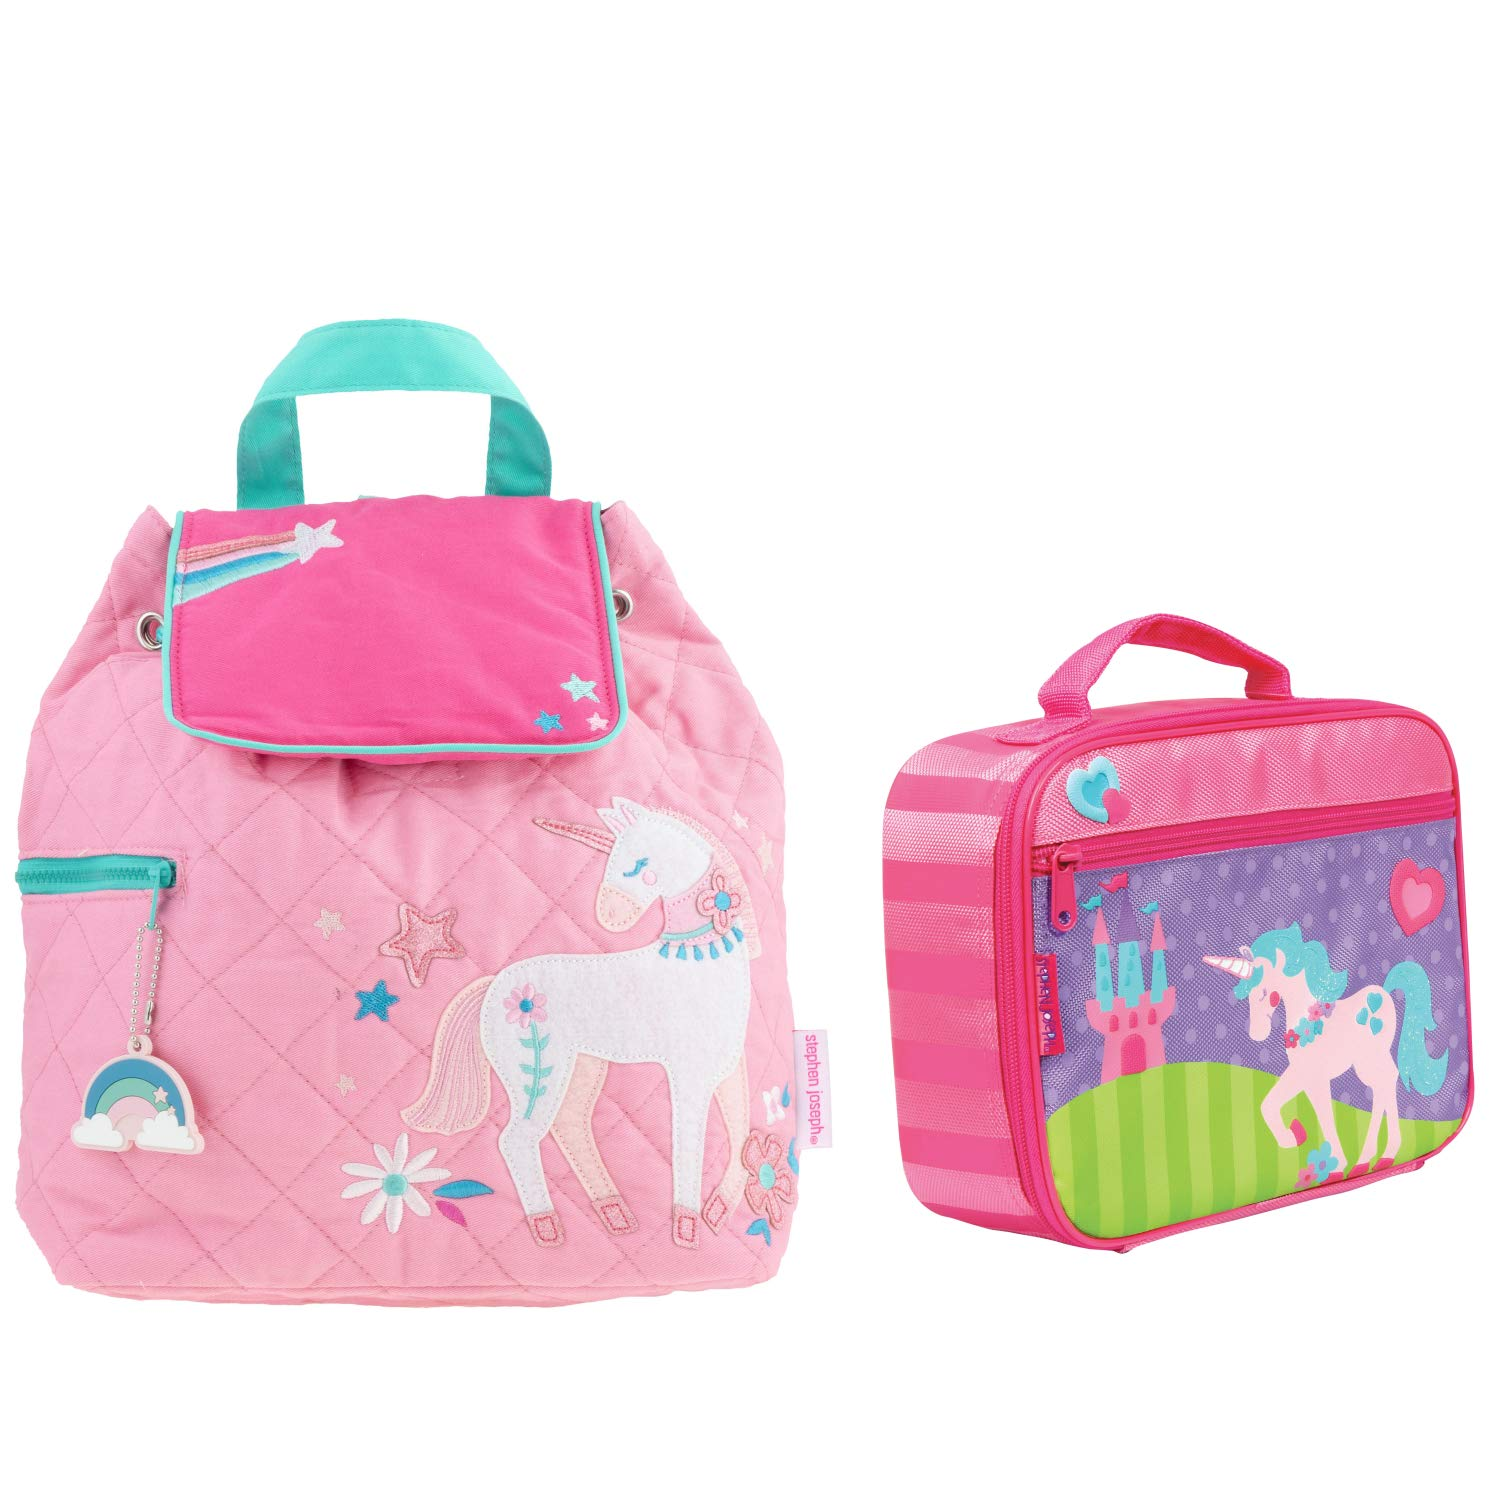 Stephen Joseph Quilted Unicorn Backpack Book Bag and Lunch Box